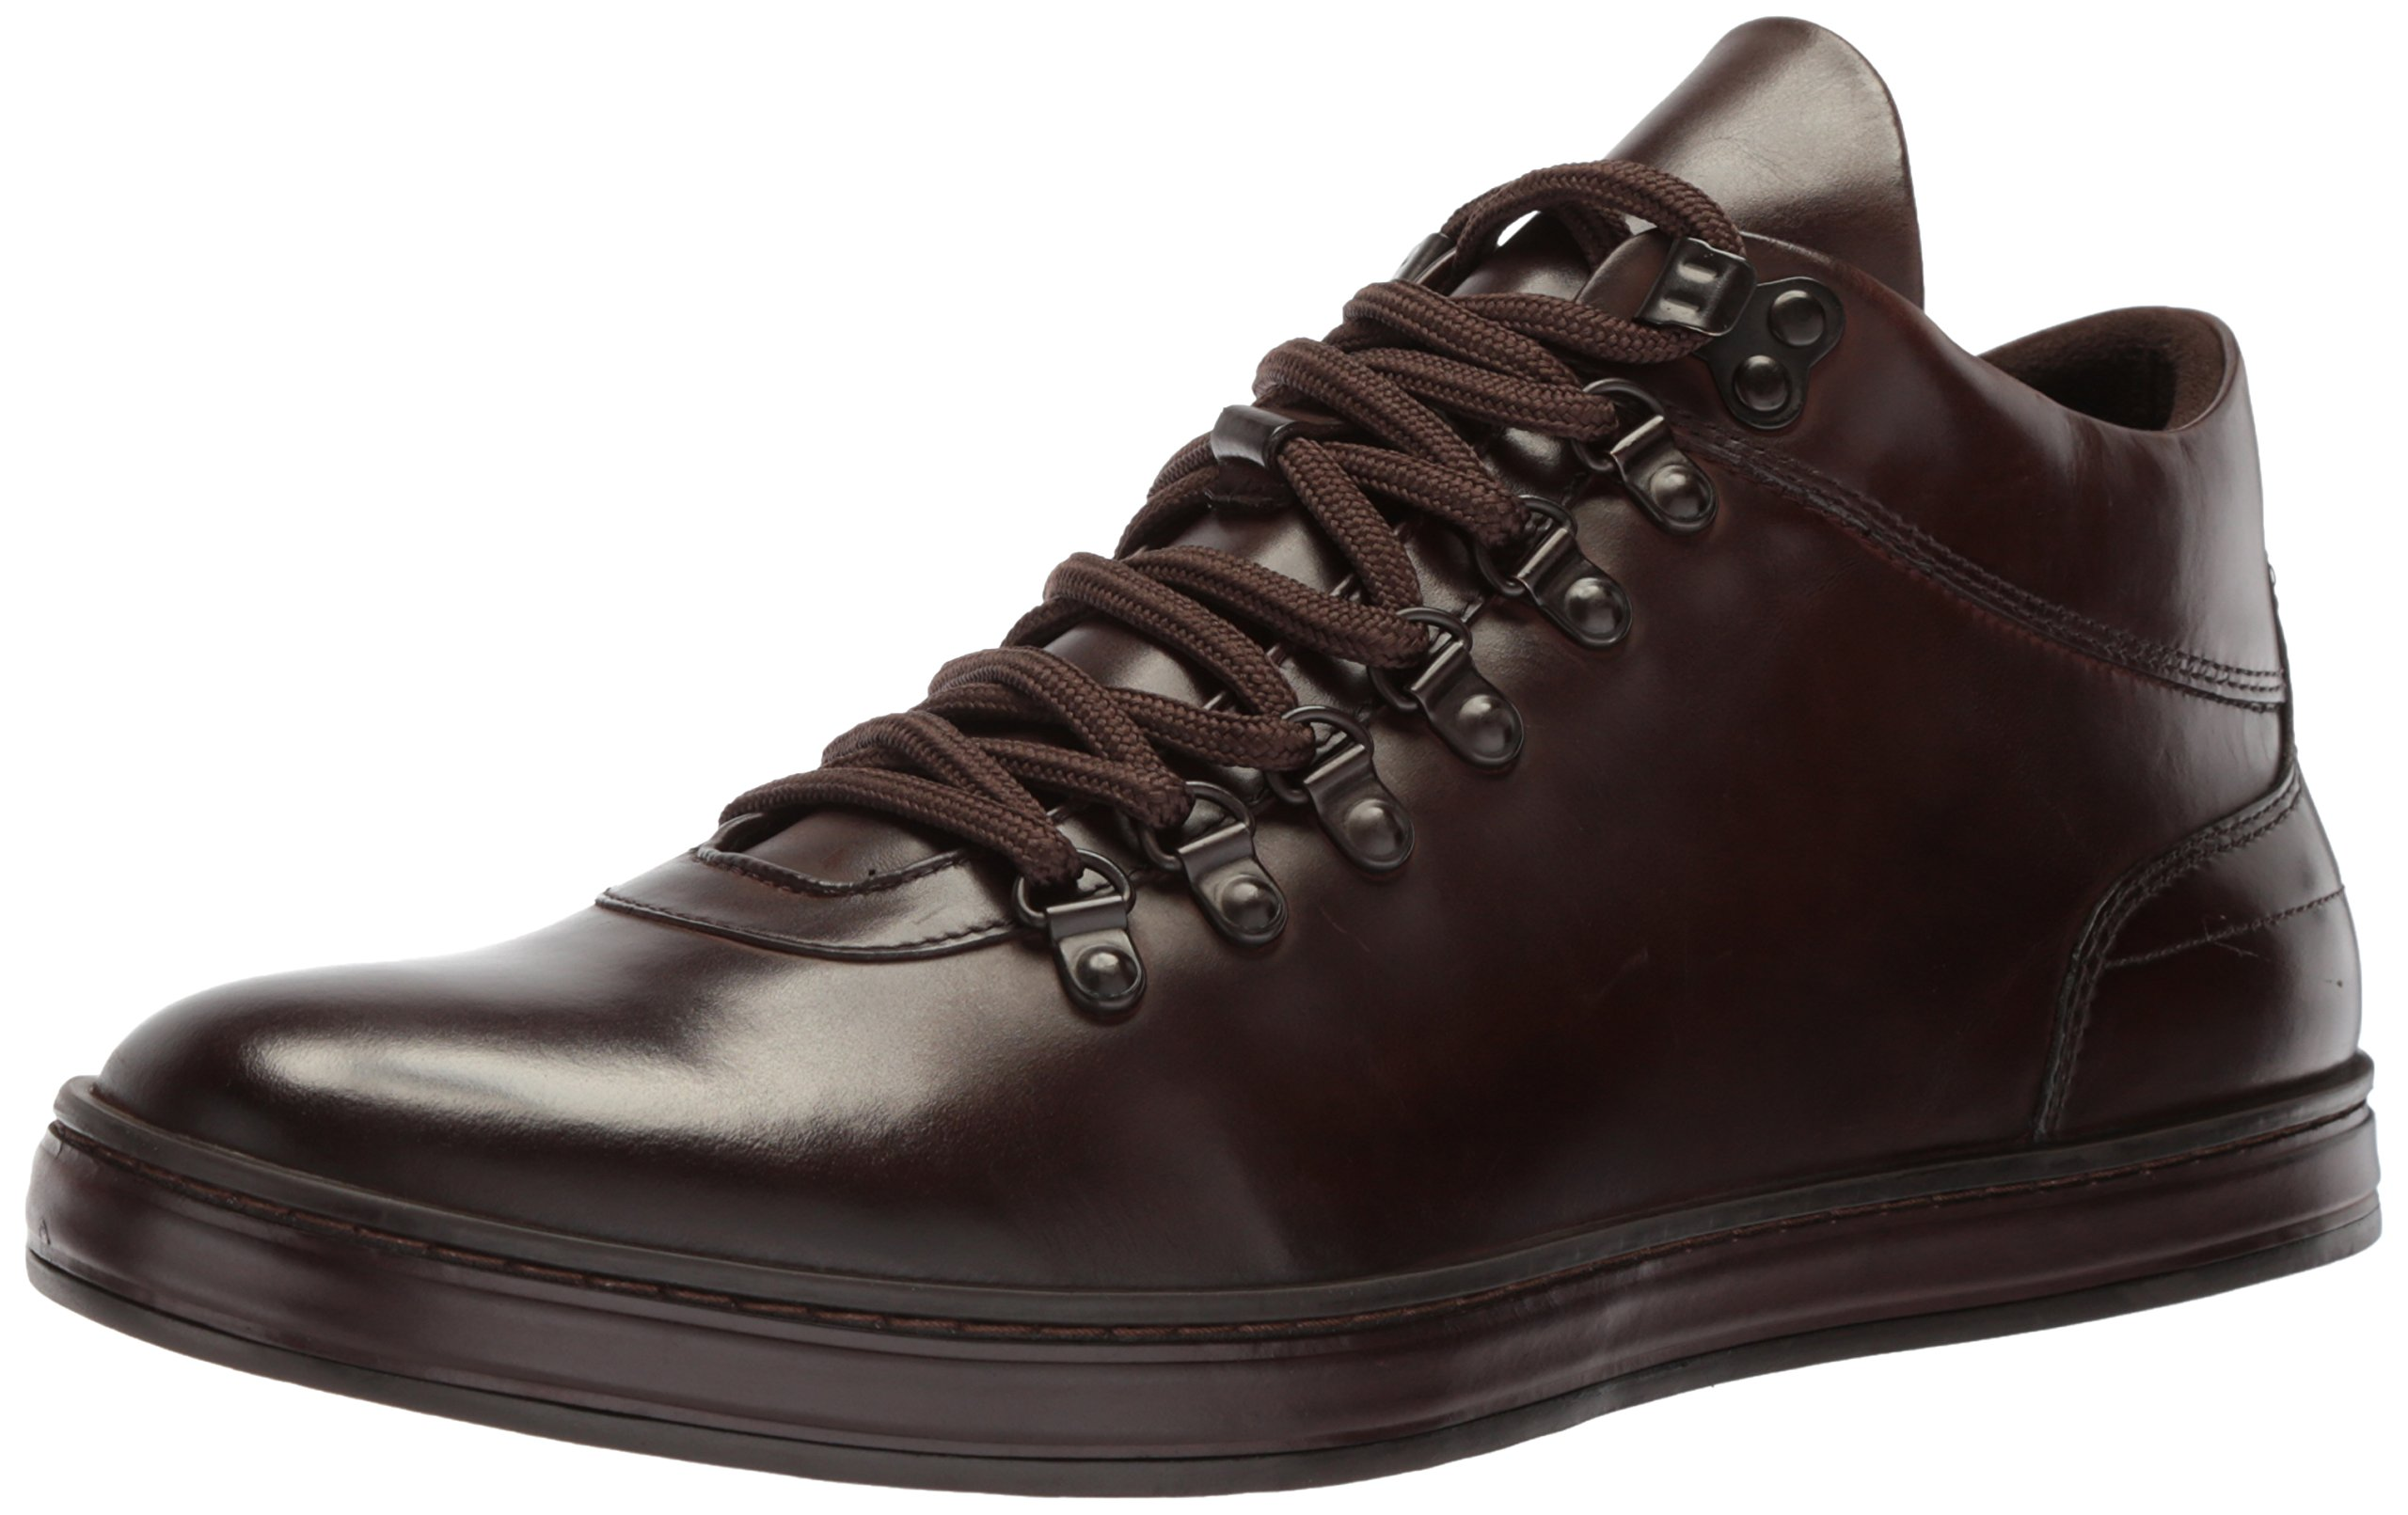 Kenneth Cole New York Men's Brand Tour Sneaker, Brown Leather, 7.5 M US